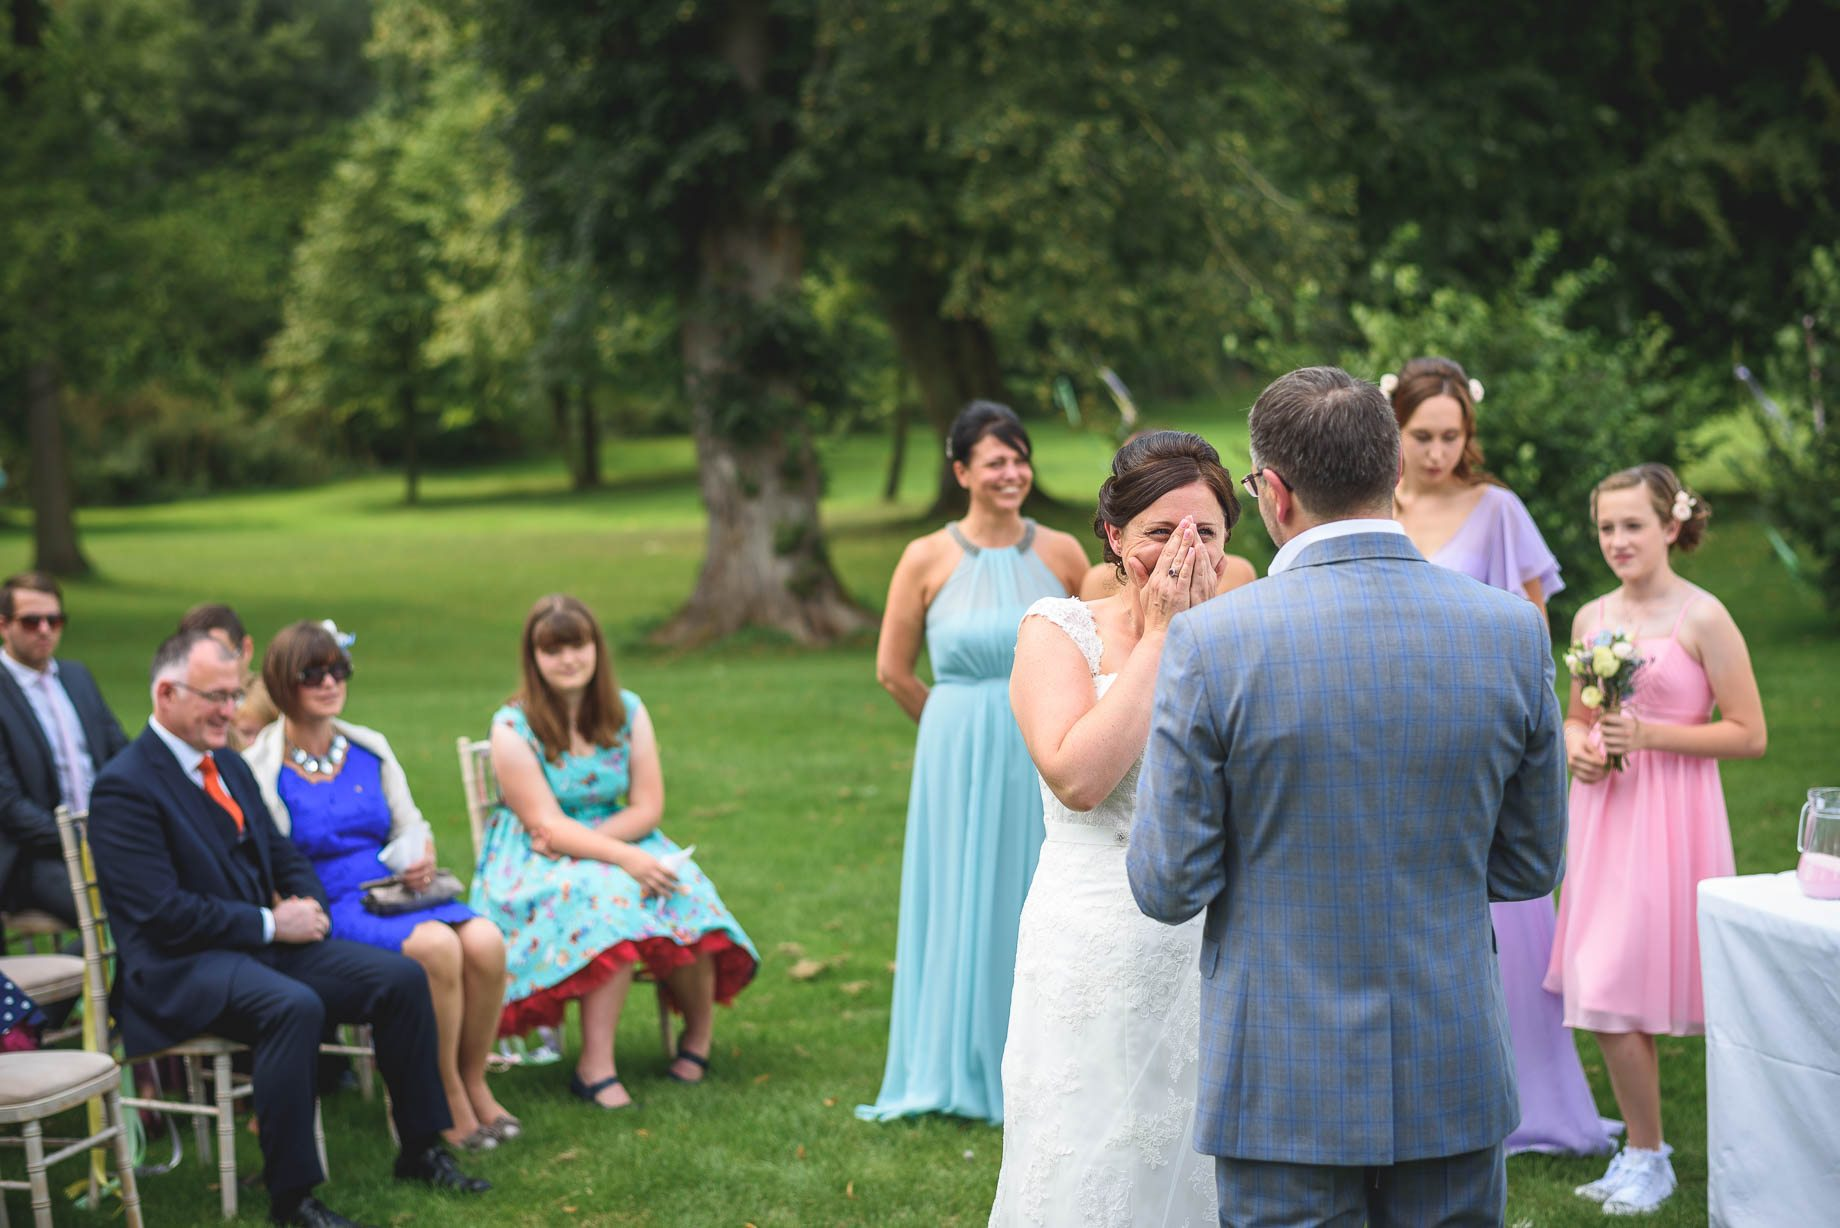 Luton-Hoo-wedding-photography-by-Guy-Collier-Photography-Lauren-and-Gem-60-of-178